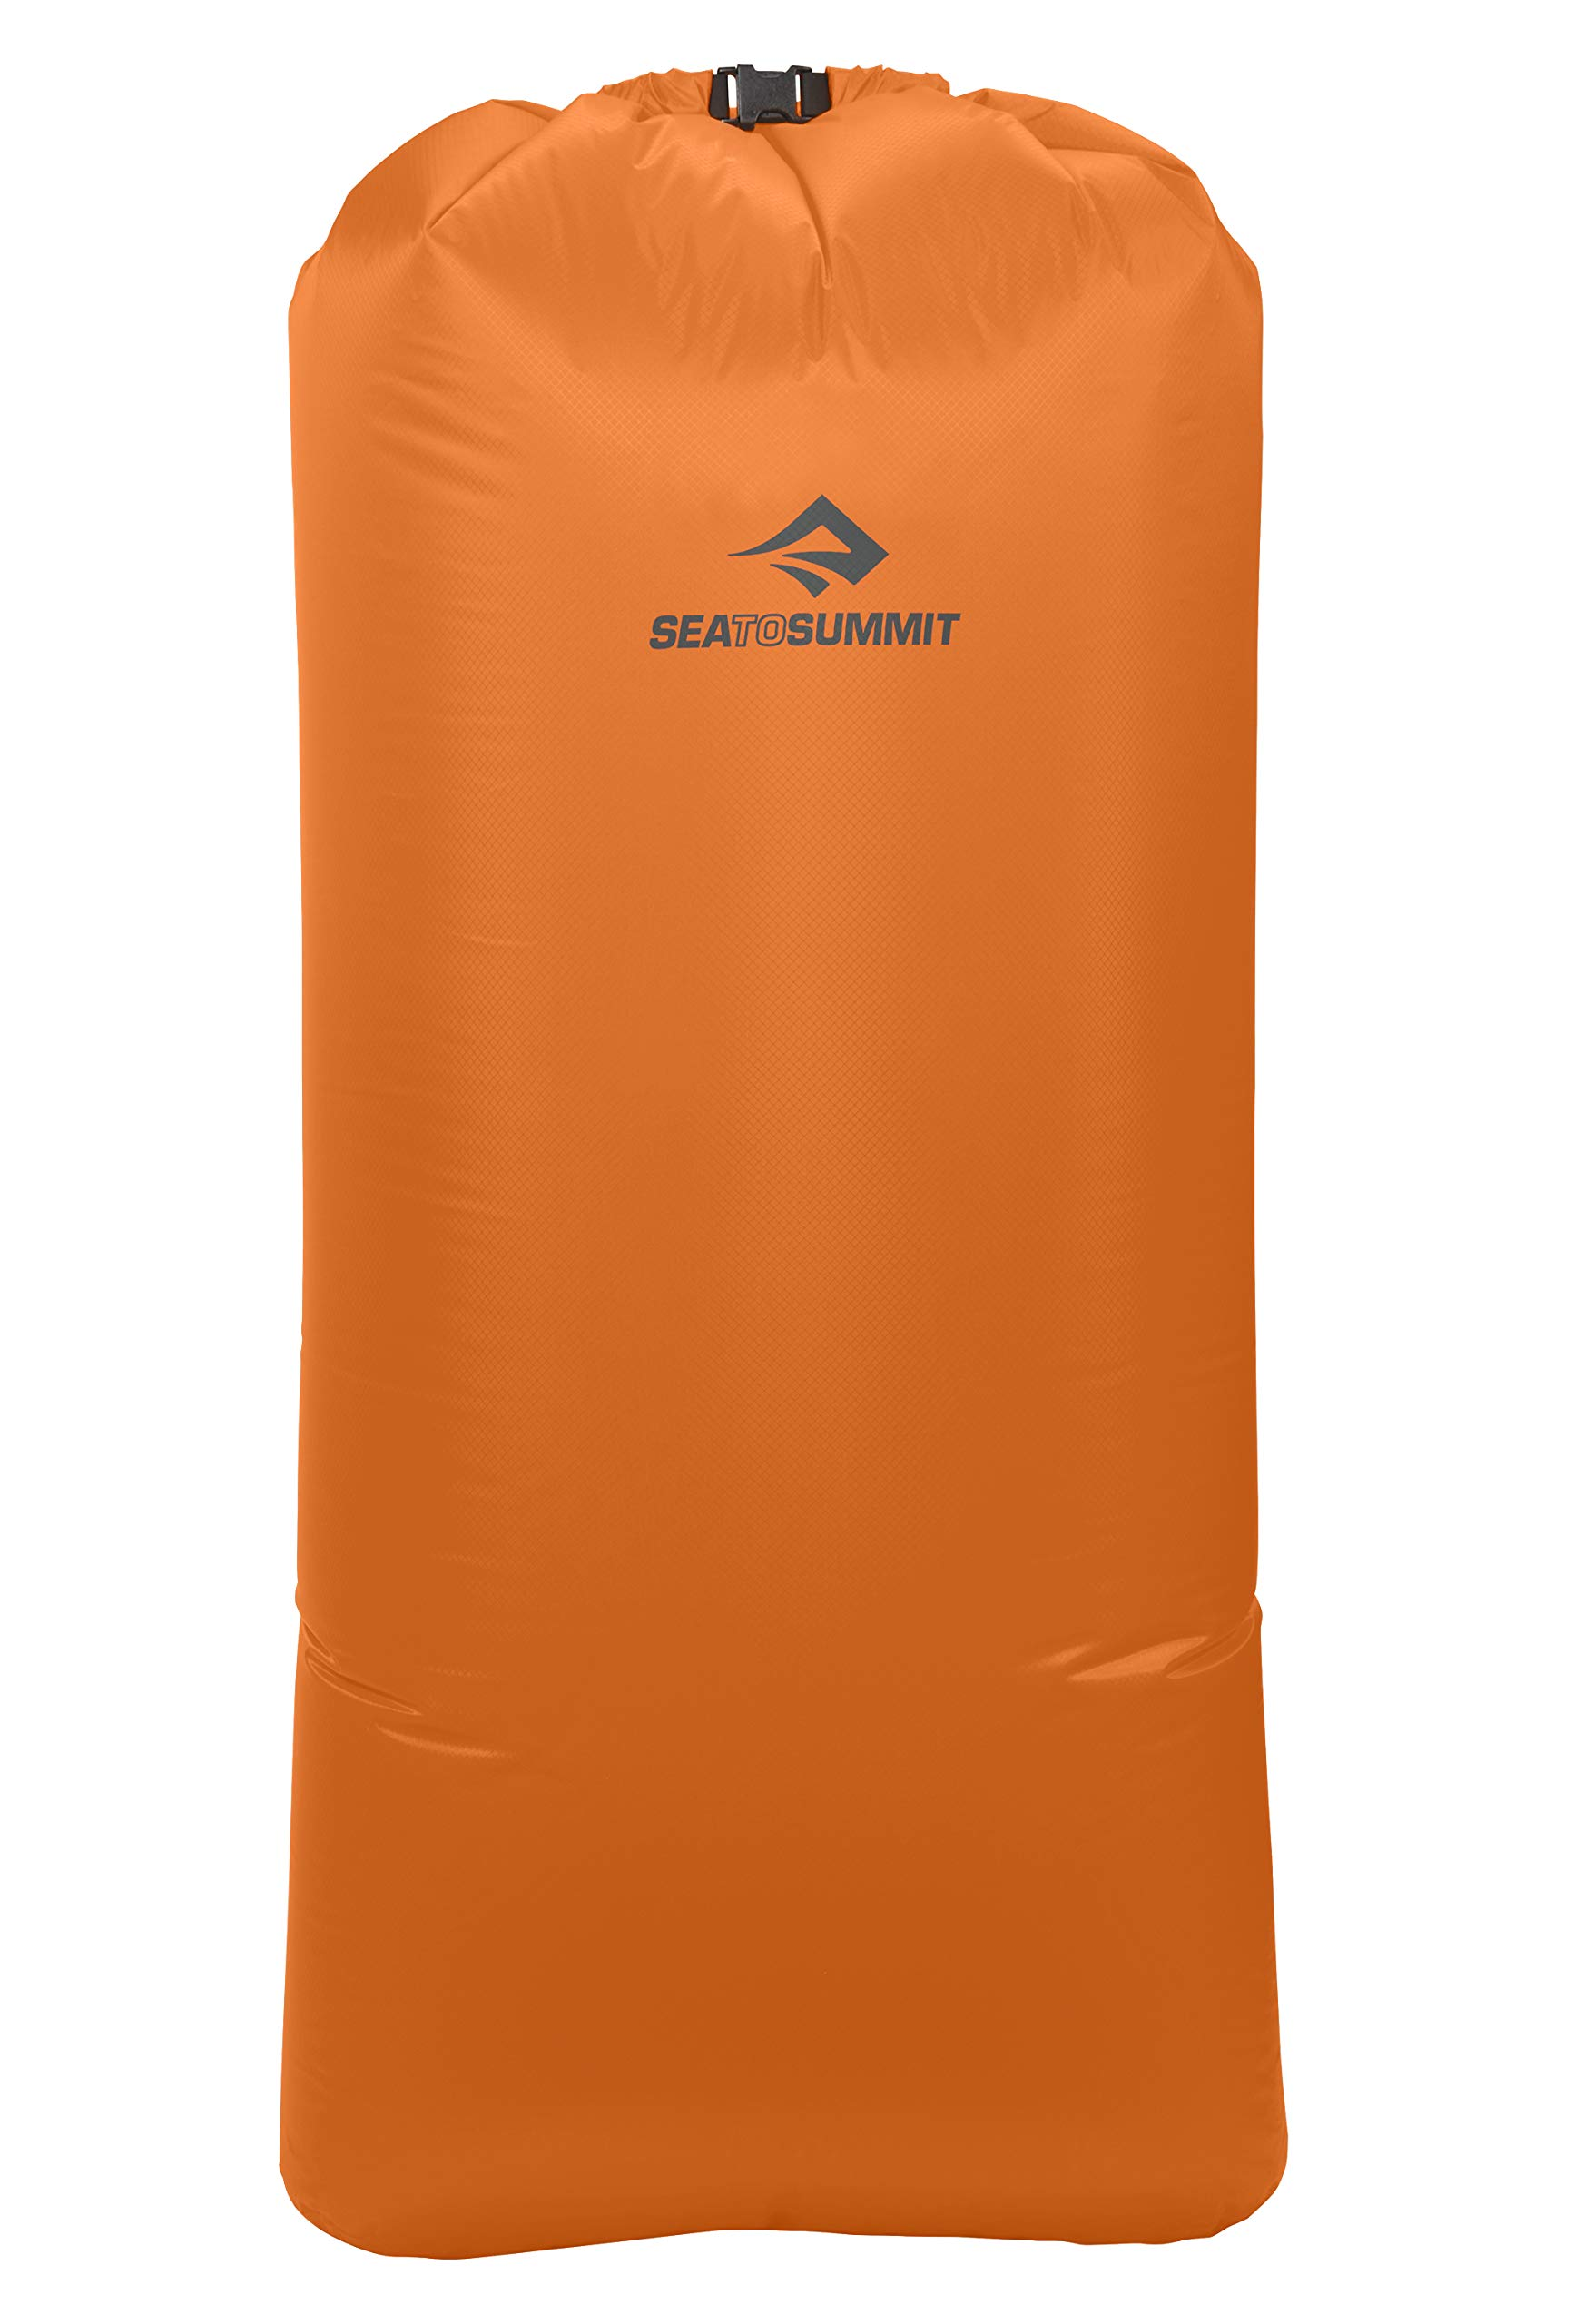 Sea to Summit Ultra-SIL Pack Liner, Orange, Large by Sea to Summit